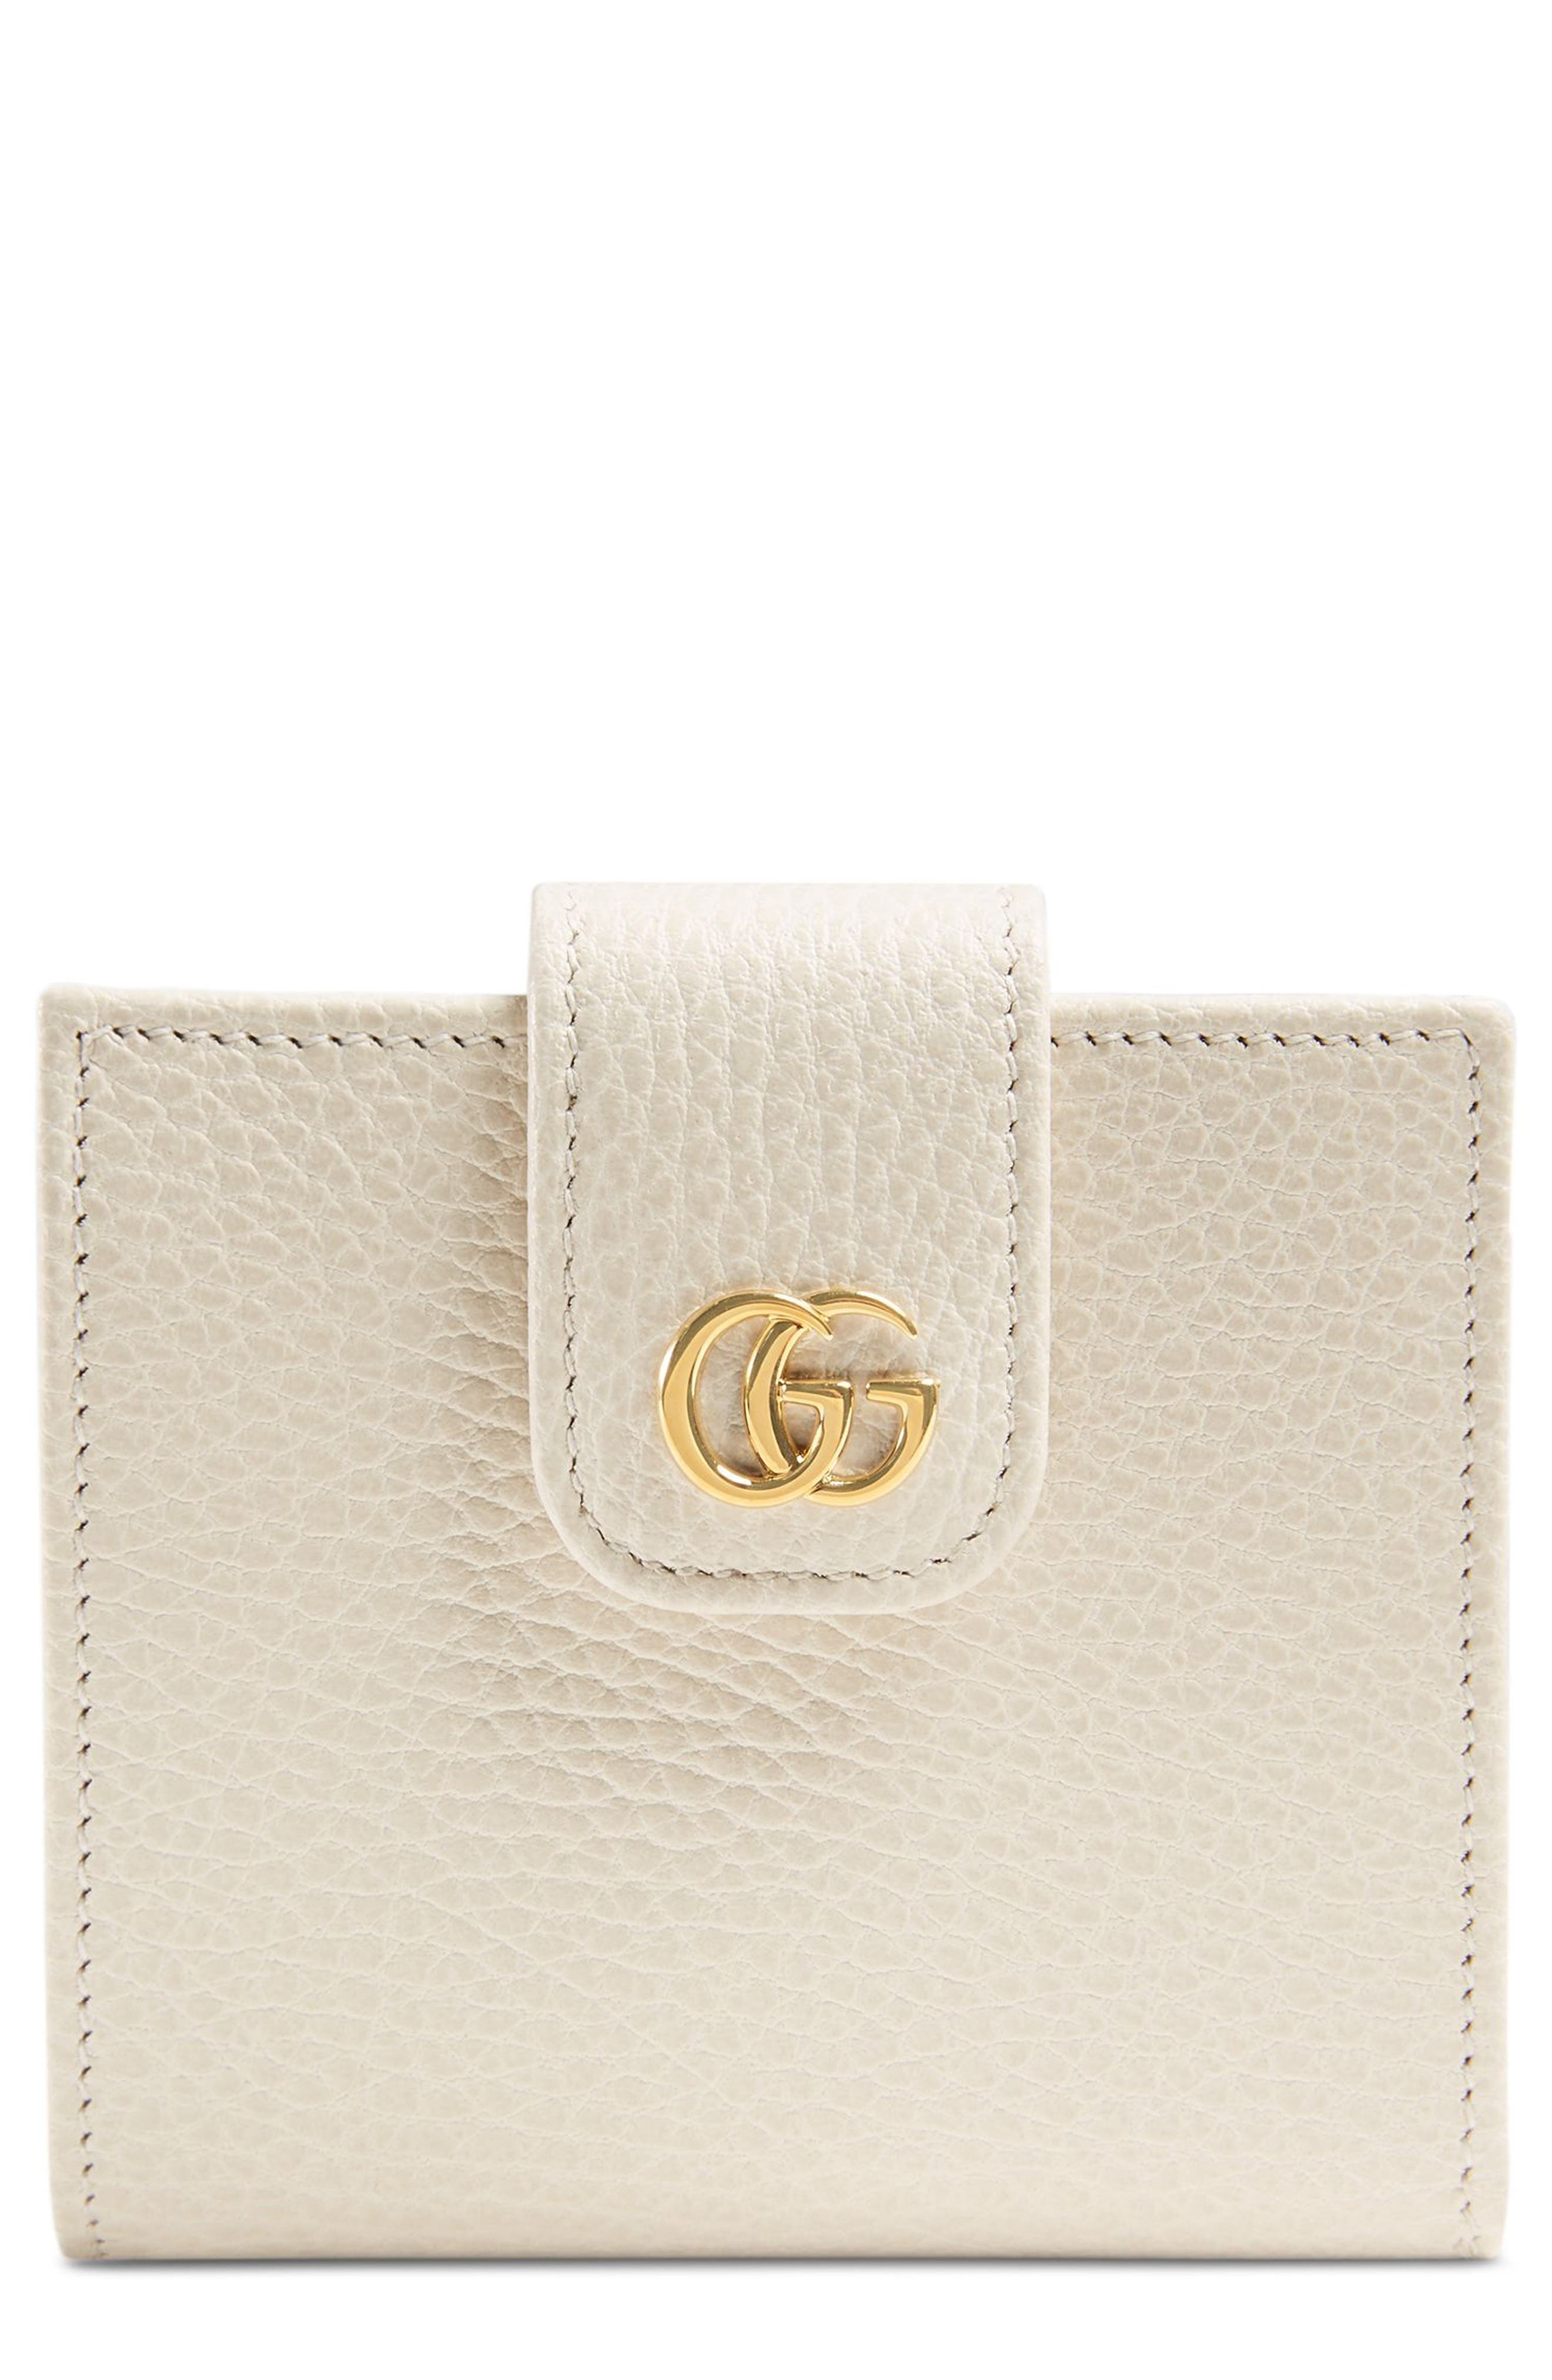 GG Marmont Leather Wallet,                             Main thumbnail 1, color,                             Mystic White